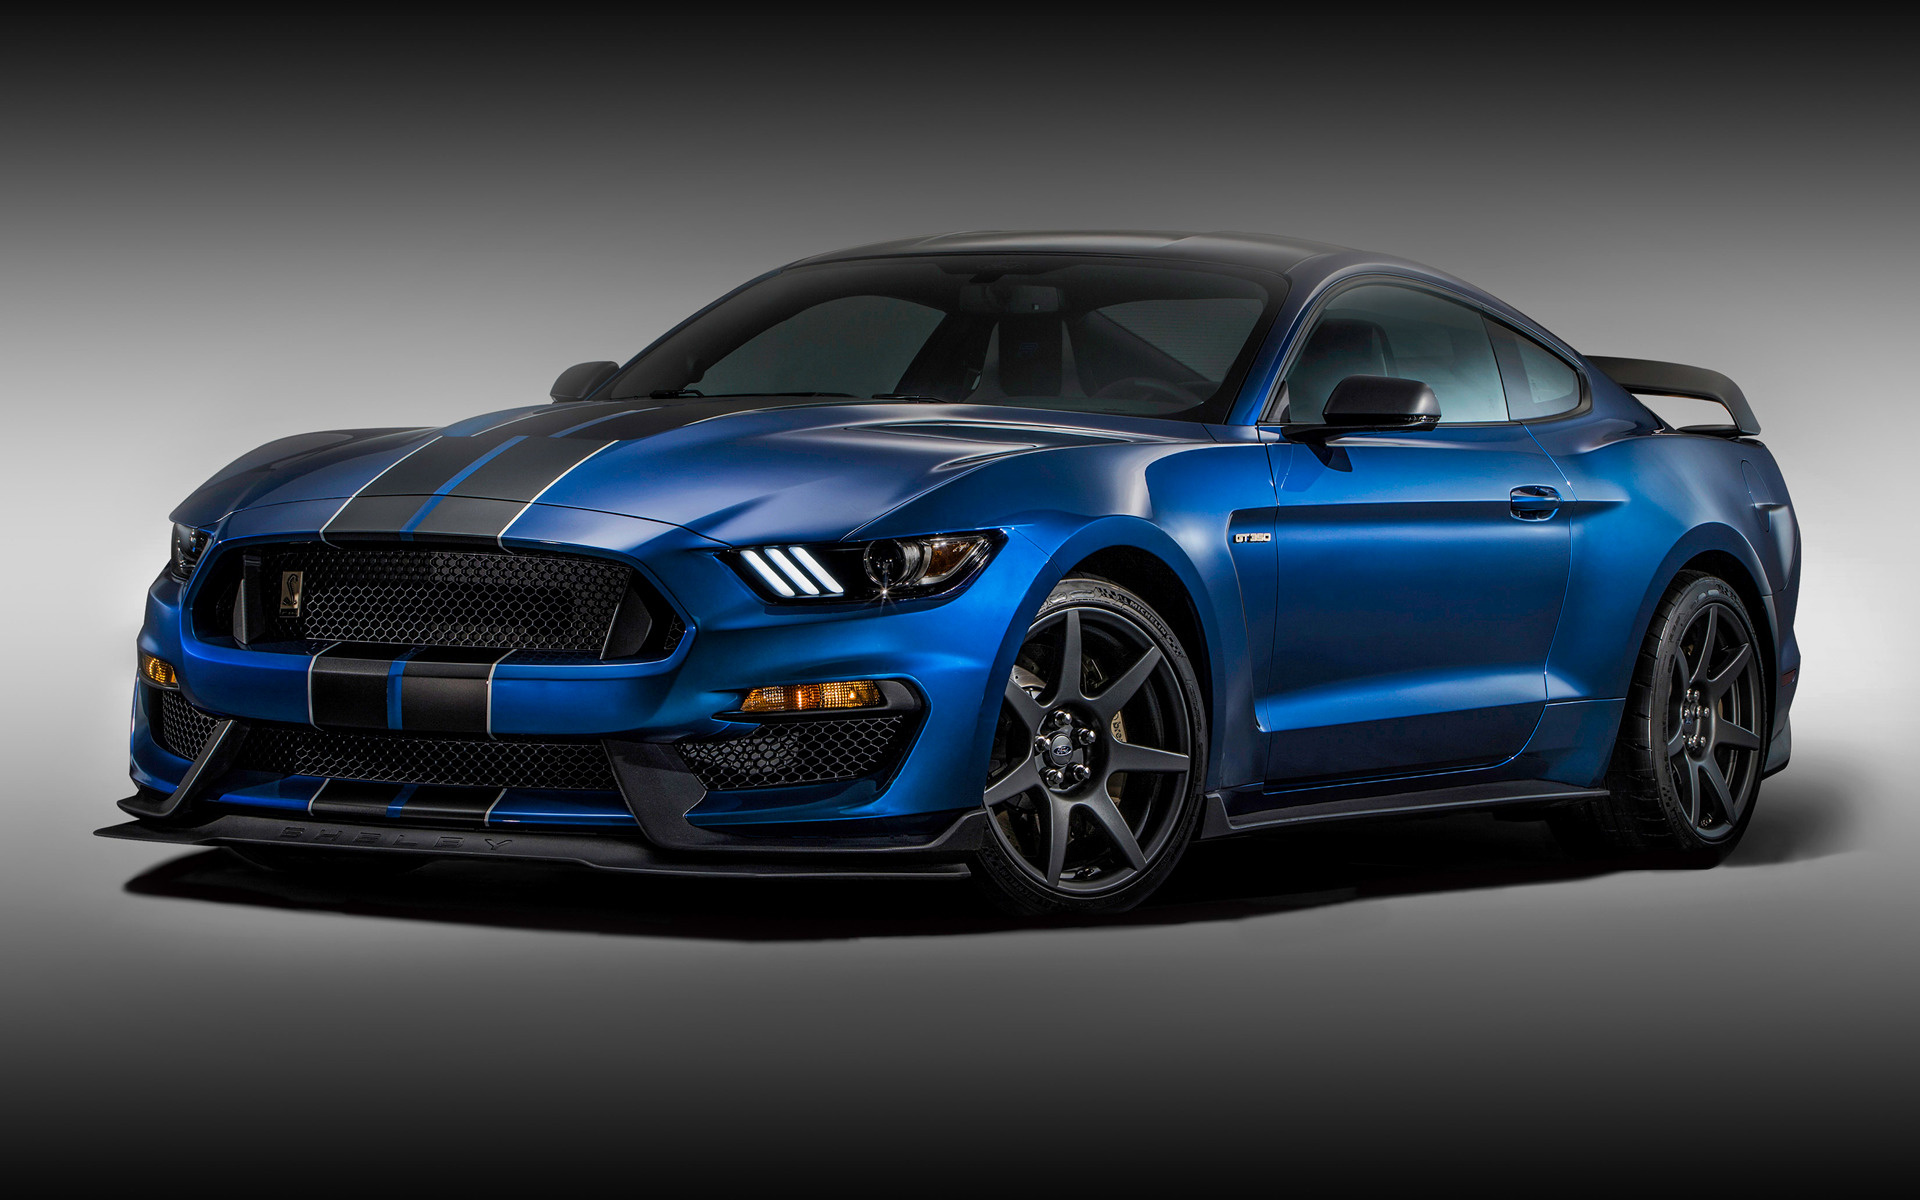 2016 Shelby Gt350r Mustang Wallpapers And Hd Images